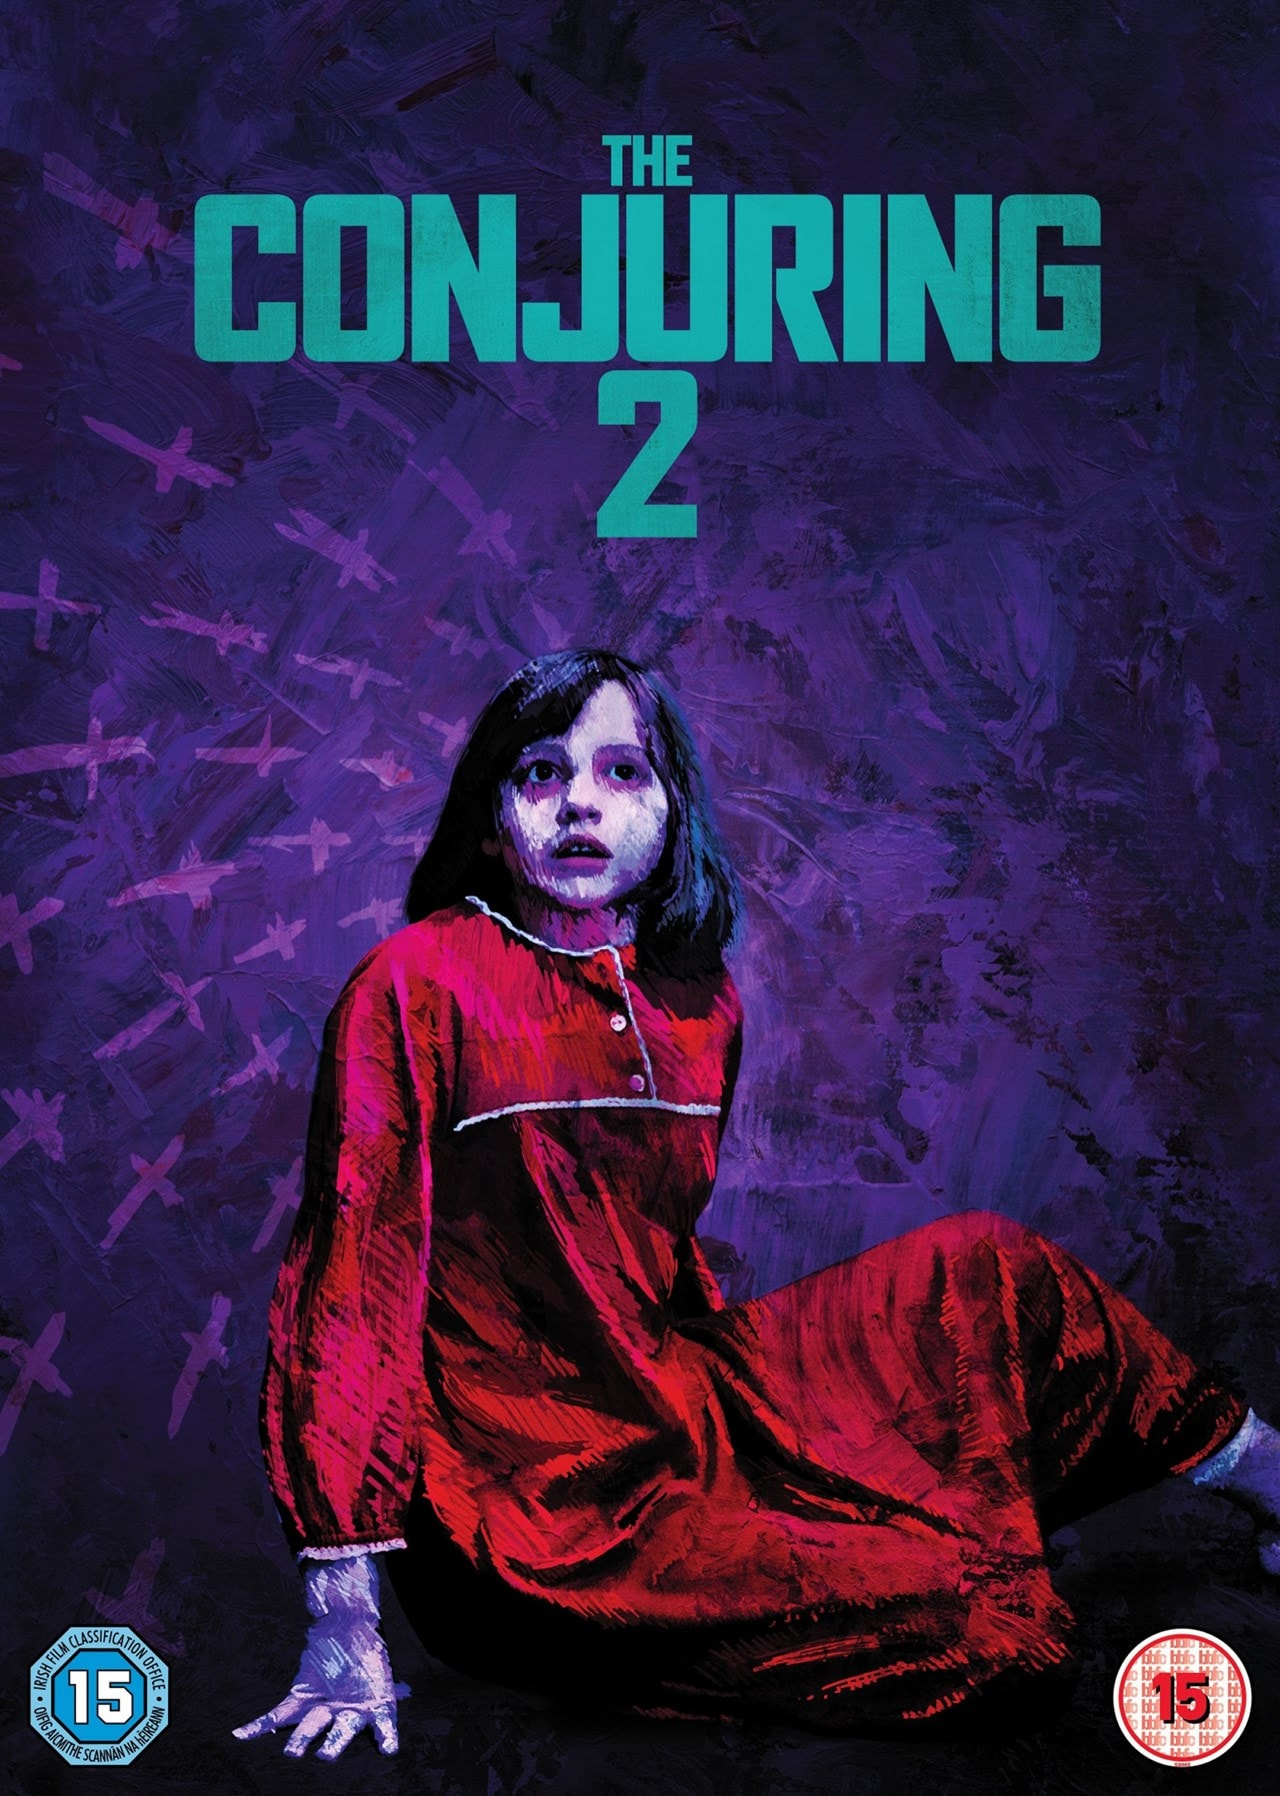 The Conjuring 2 - The Enfield Case - 1